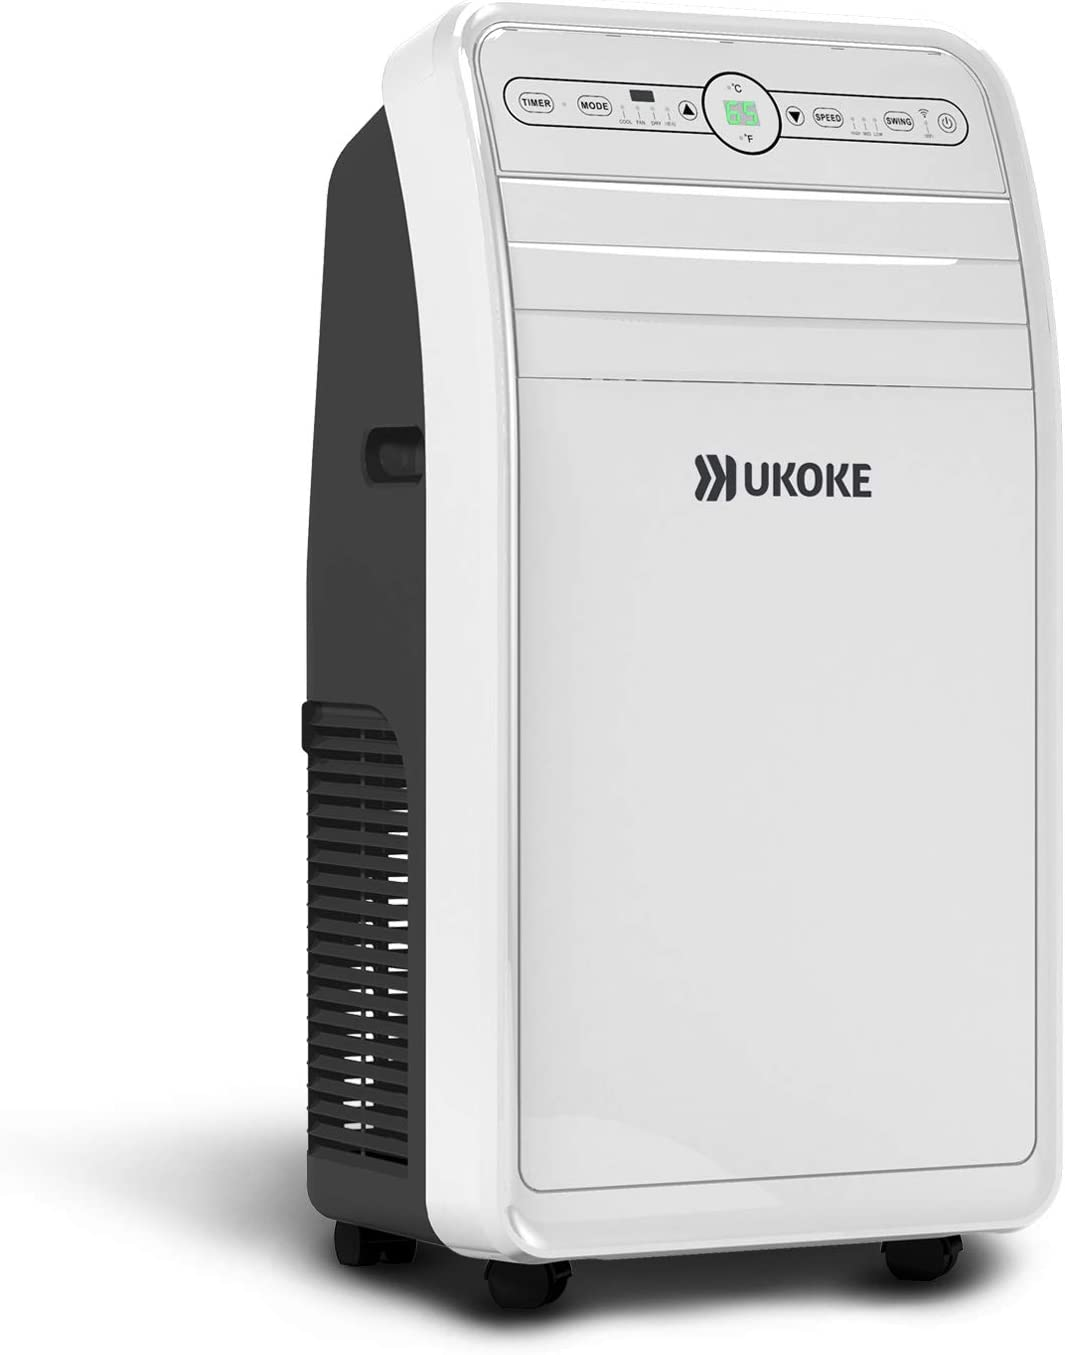 Ukoke USPC01W Smart Wifi Portable Air Conditioner, Works with Alexa & Mobile App Control, 12000BTU, 4 in 1 AC Unit with Cool, Heat, Dehumidifier & Fan, up to 400 Sq. ft